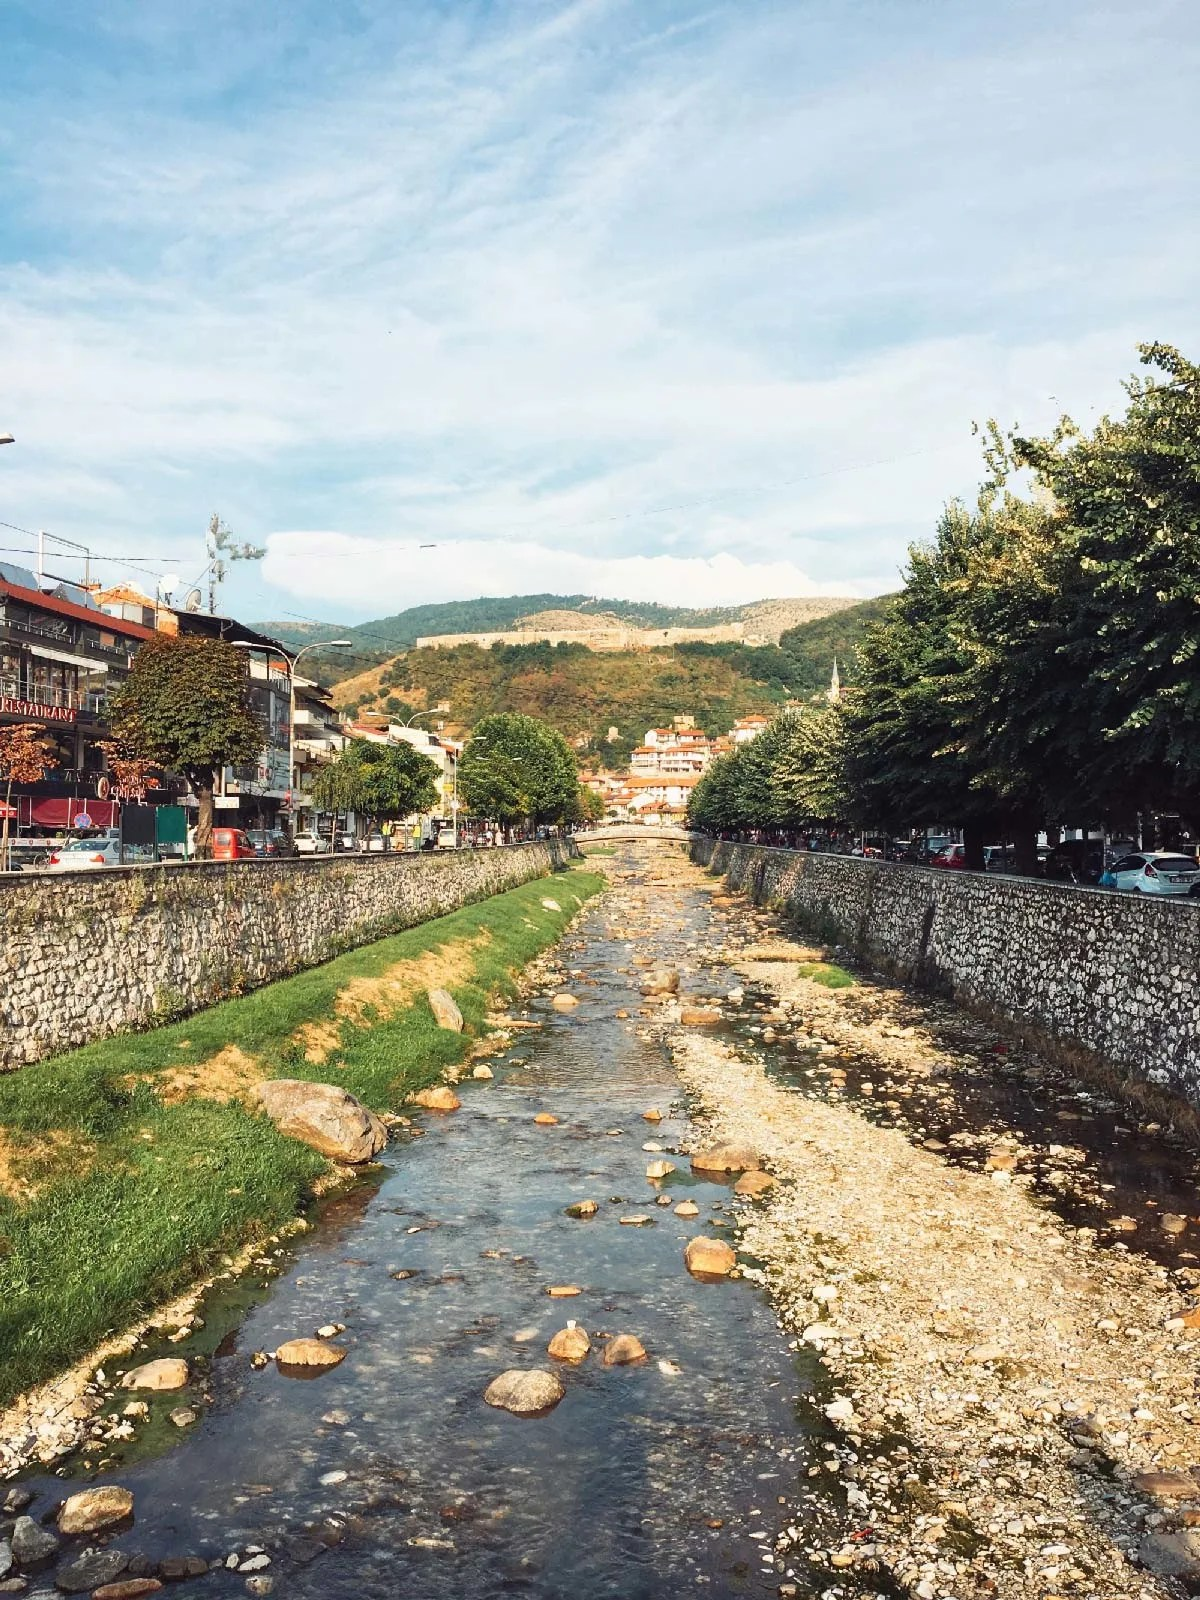 second largest town in Kosovo - A Guide to Prizren, Kosovo